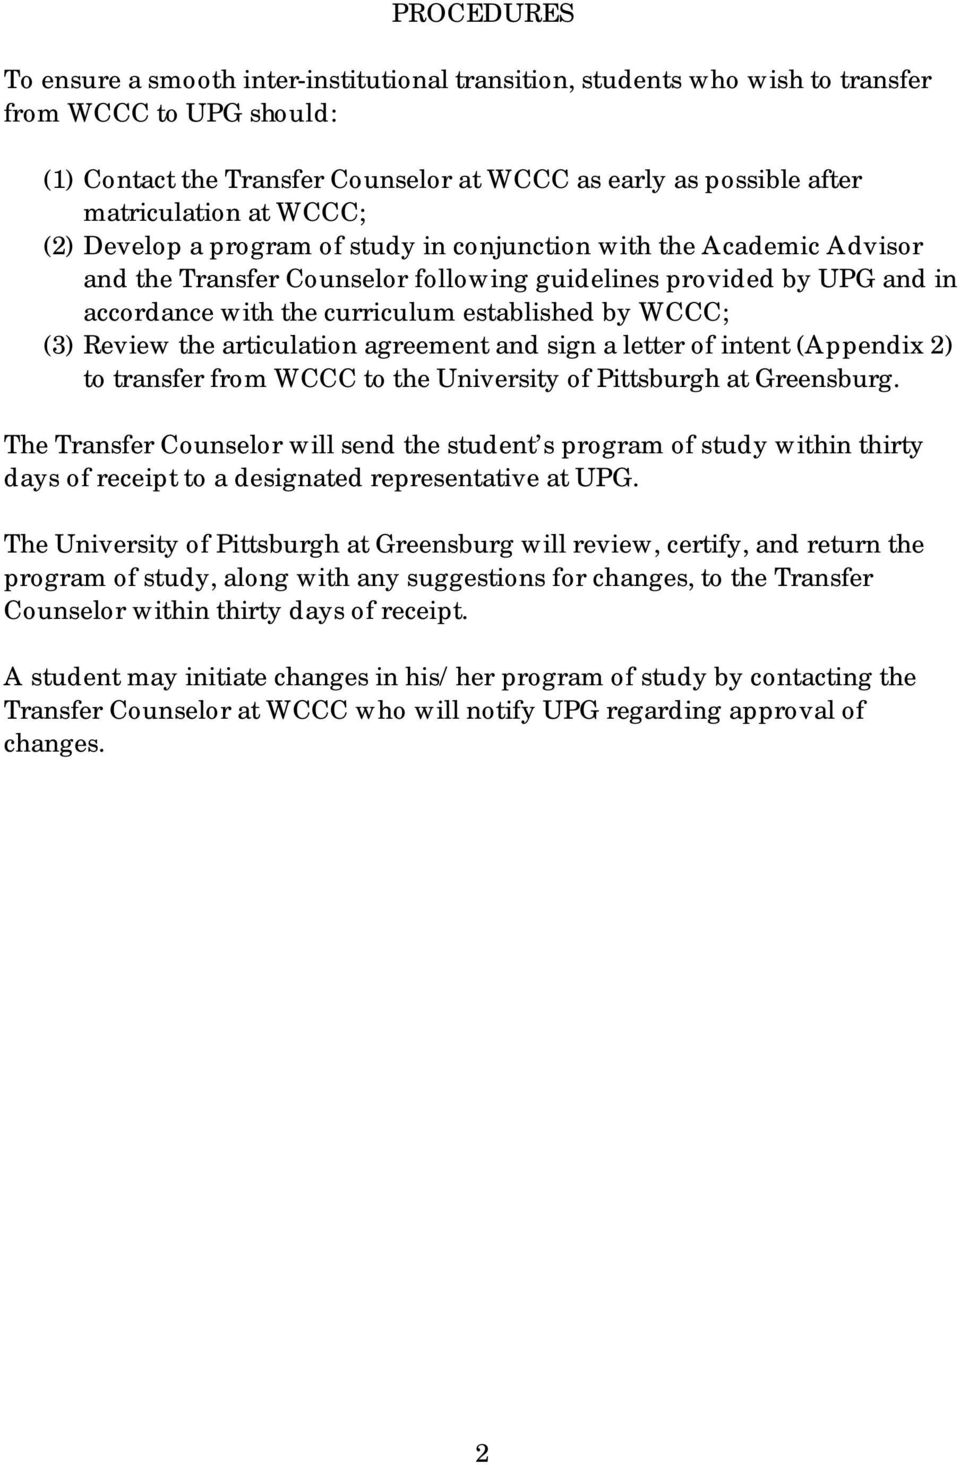 established by WCCC; (3) Review the articulation agreement and sign a letter of intent (Appendix 2) to transfer from WCCC to the University of Pittsburgh at Greensburg.